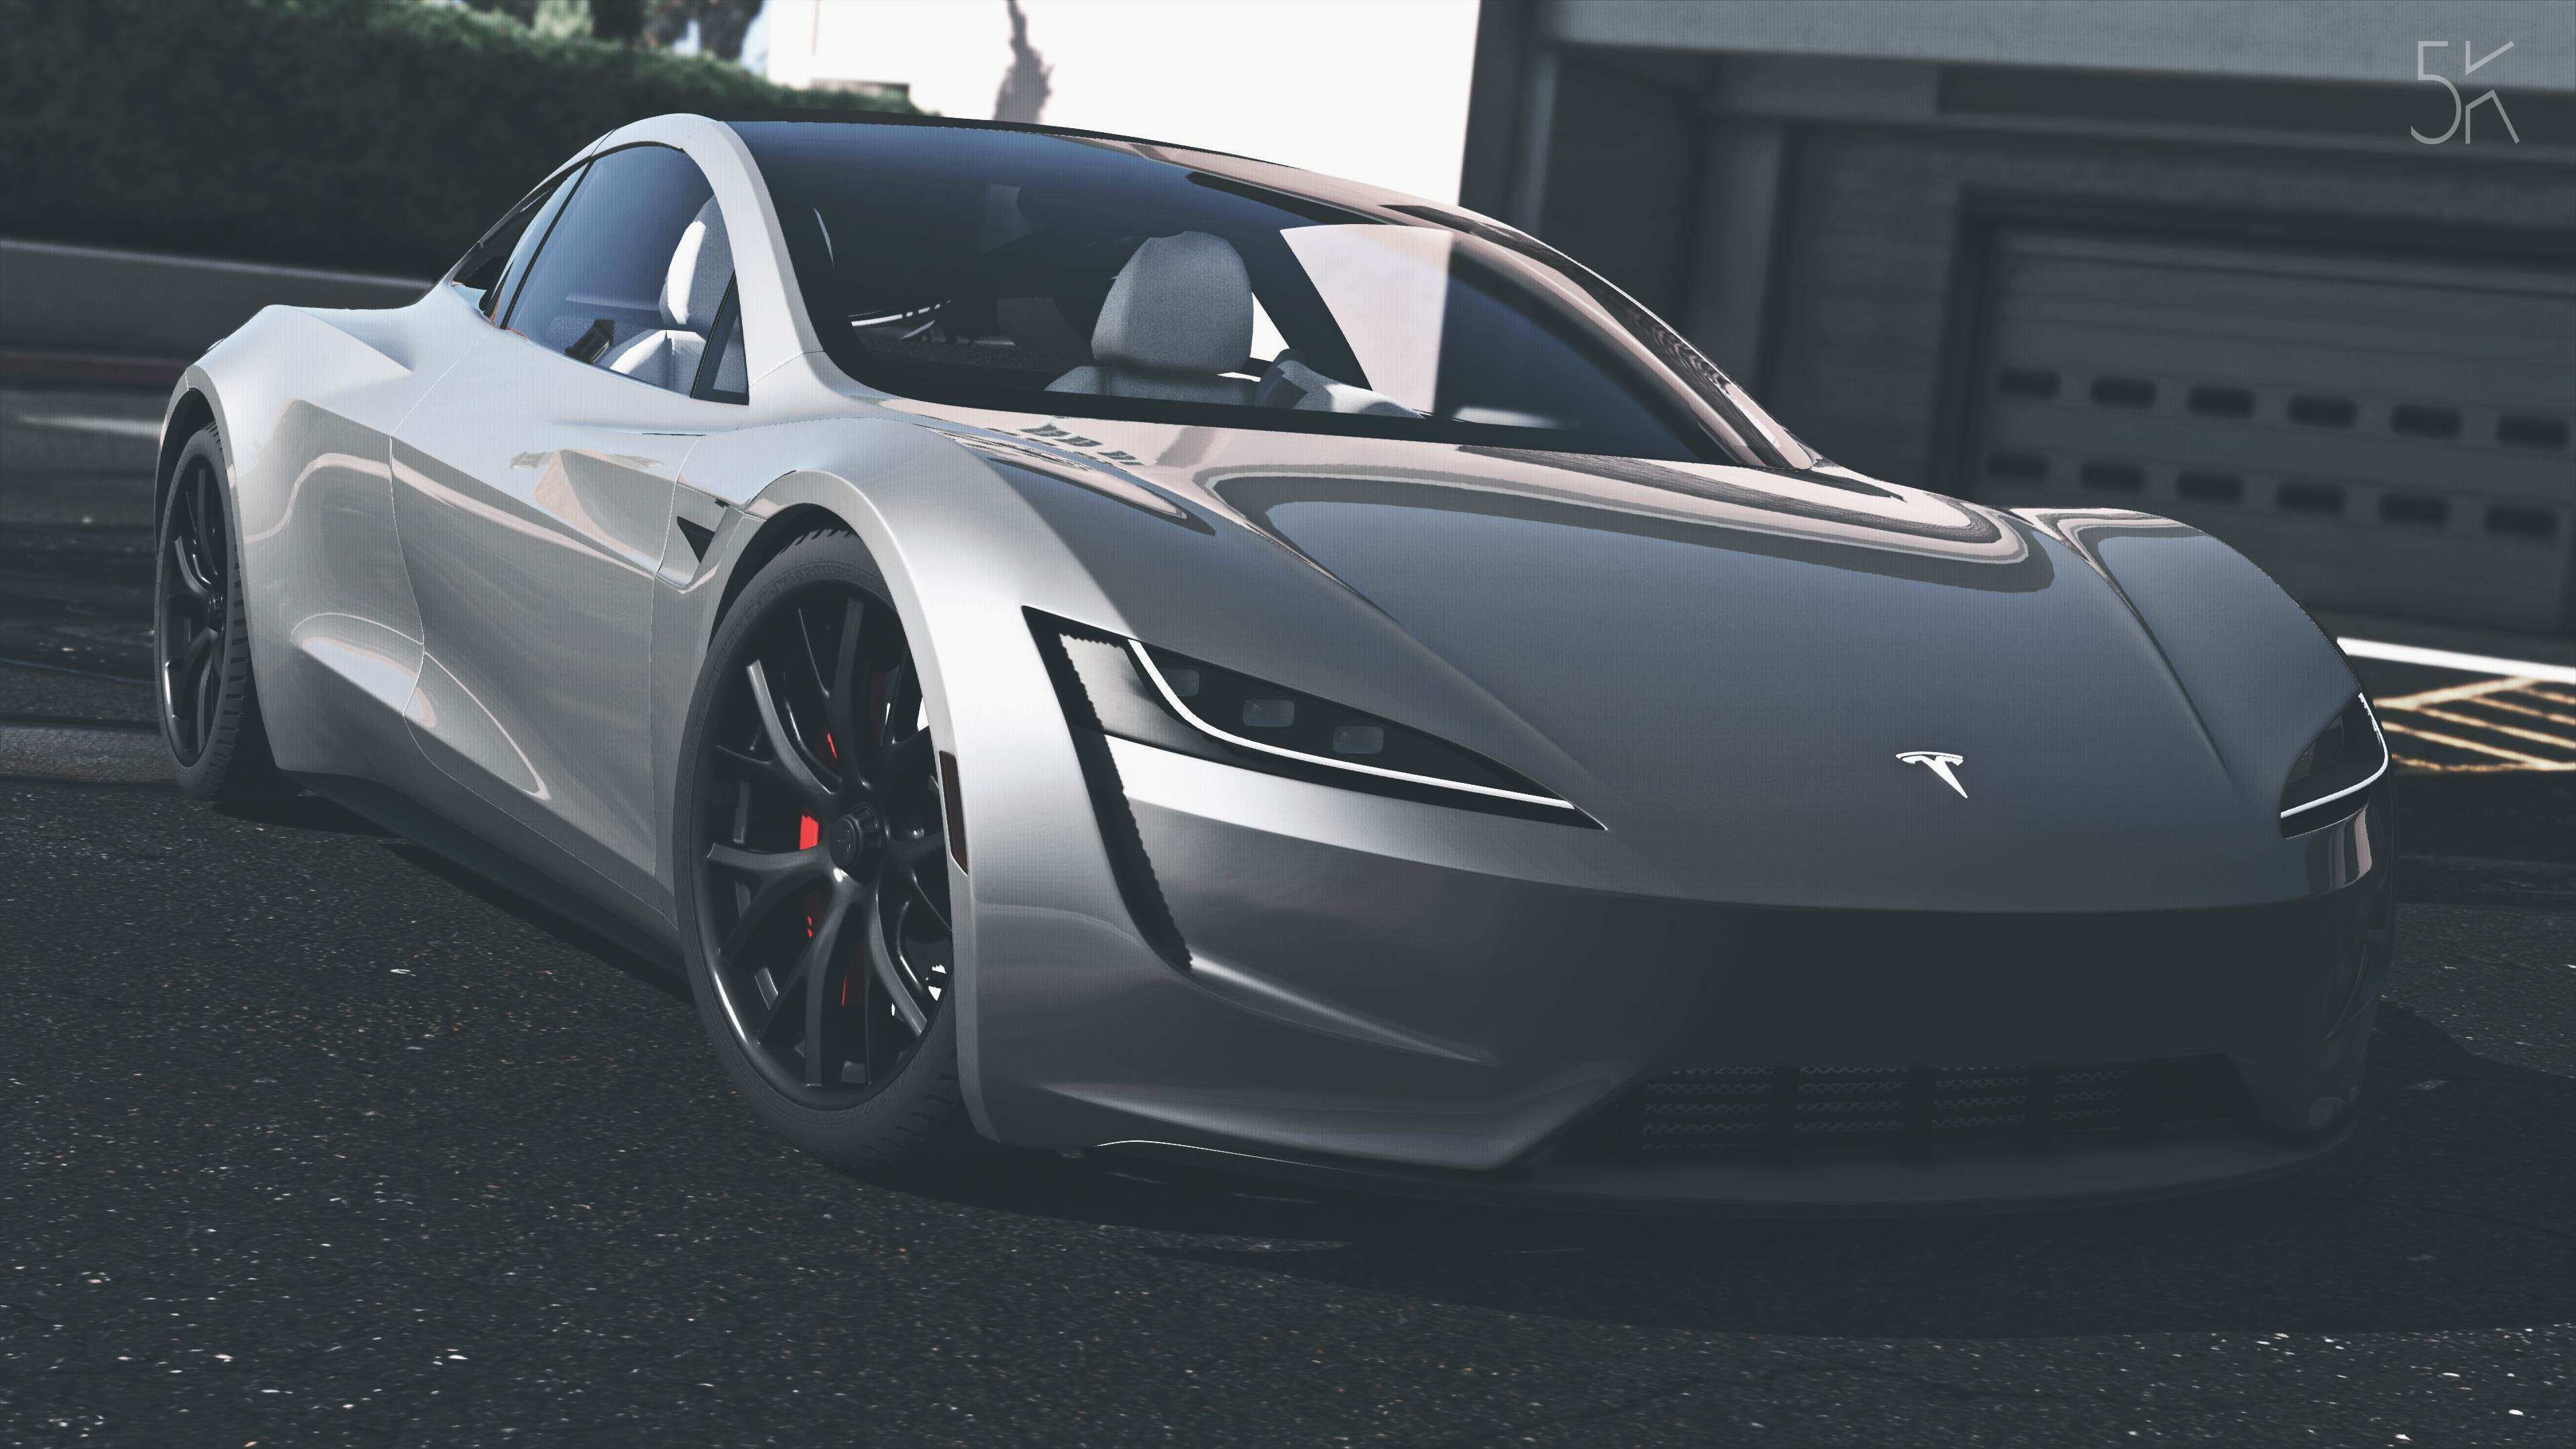 65 Gallery of Tesla In 2020 Style for Tesla In 2020